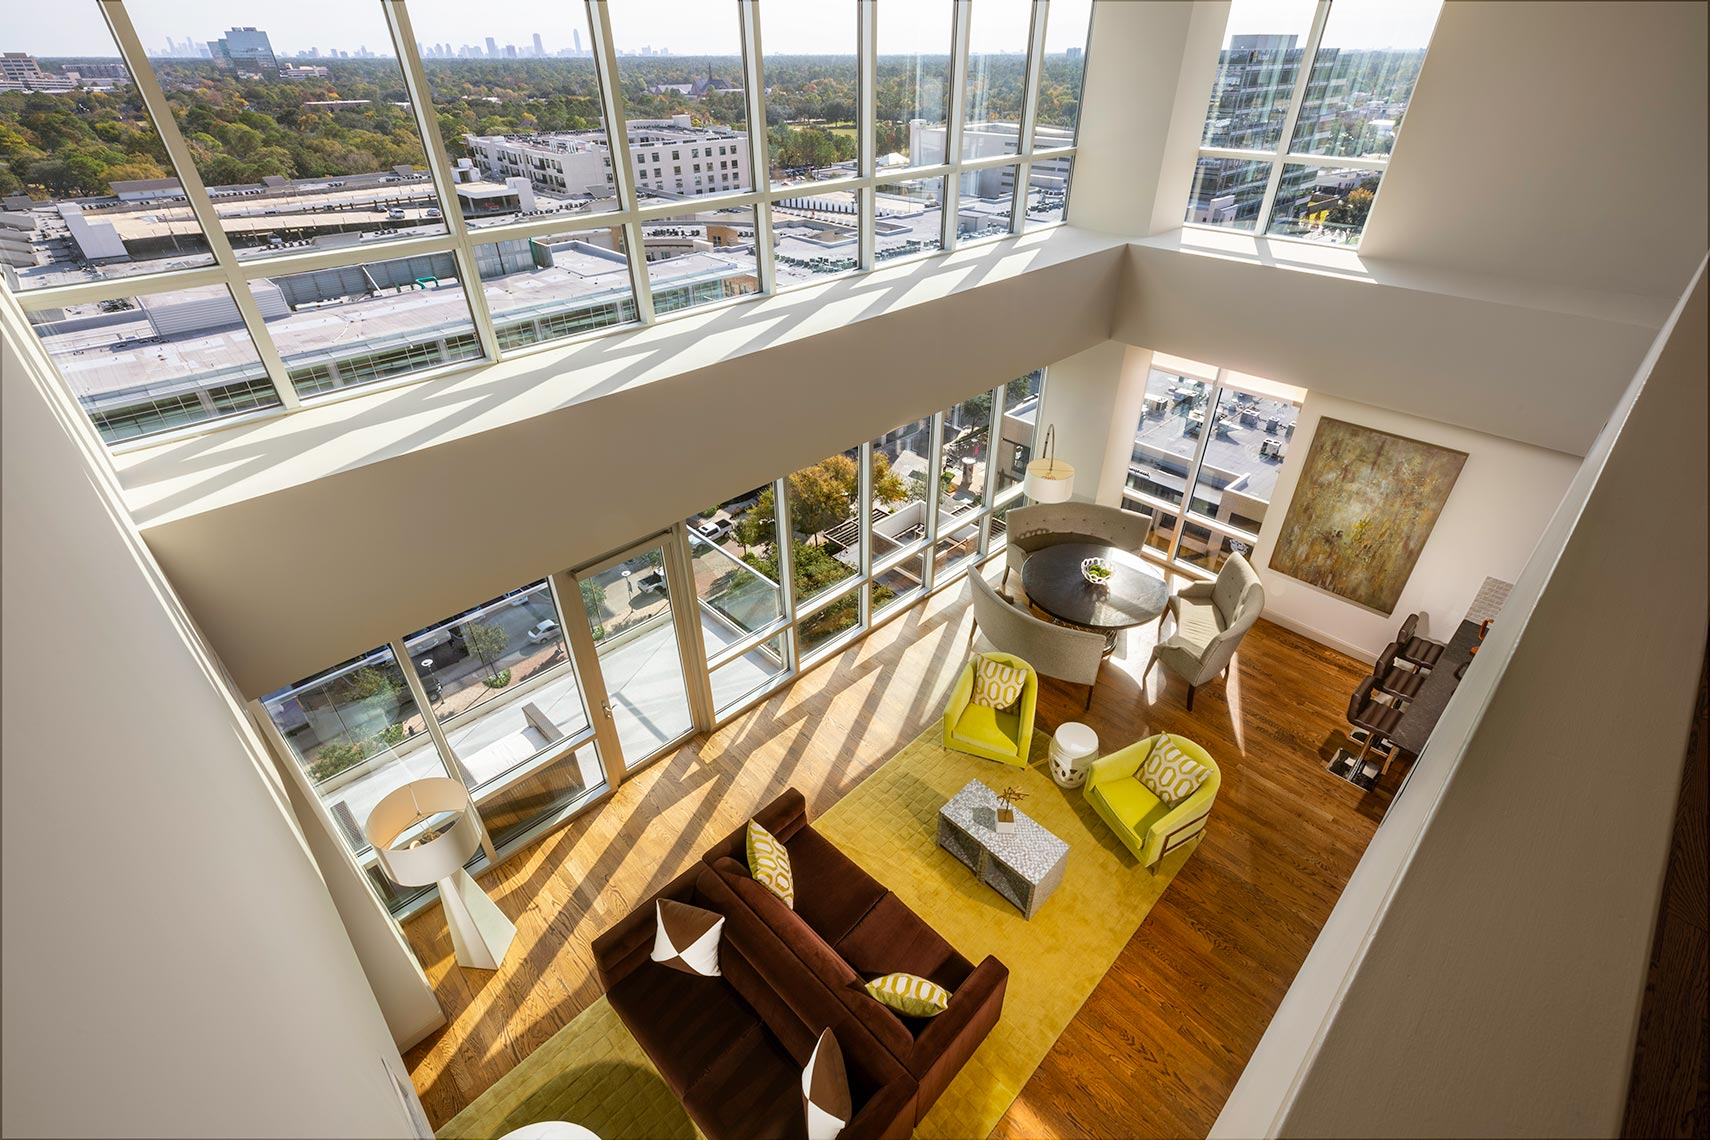 Penthouse Suite in Hotel Sorella at CityCentre by Houston Architectural Photographer Shannon O